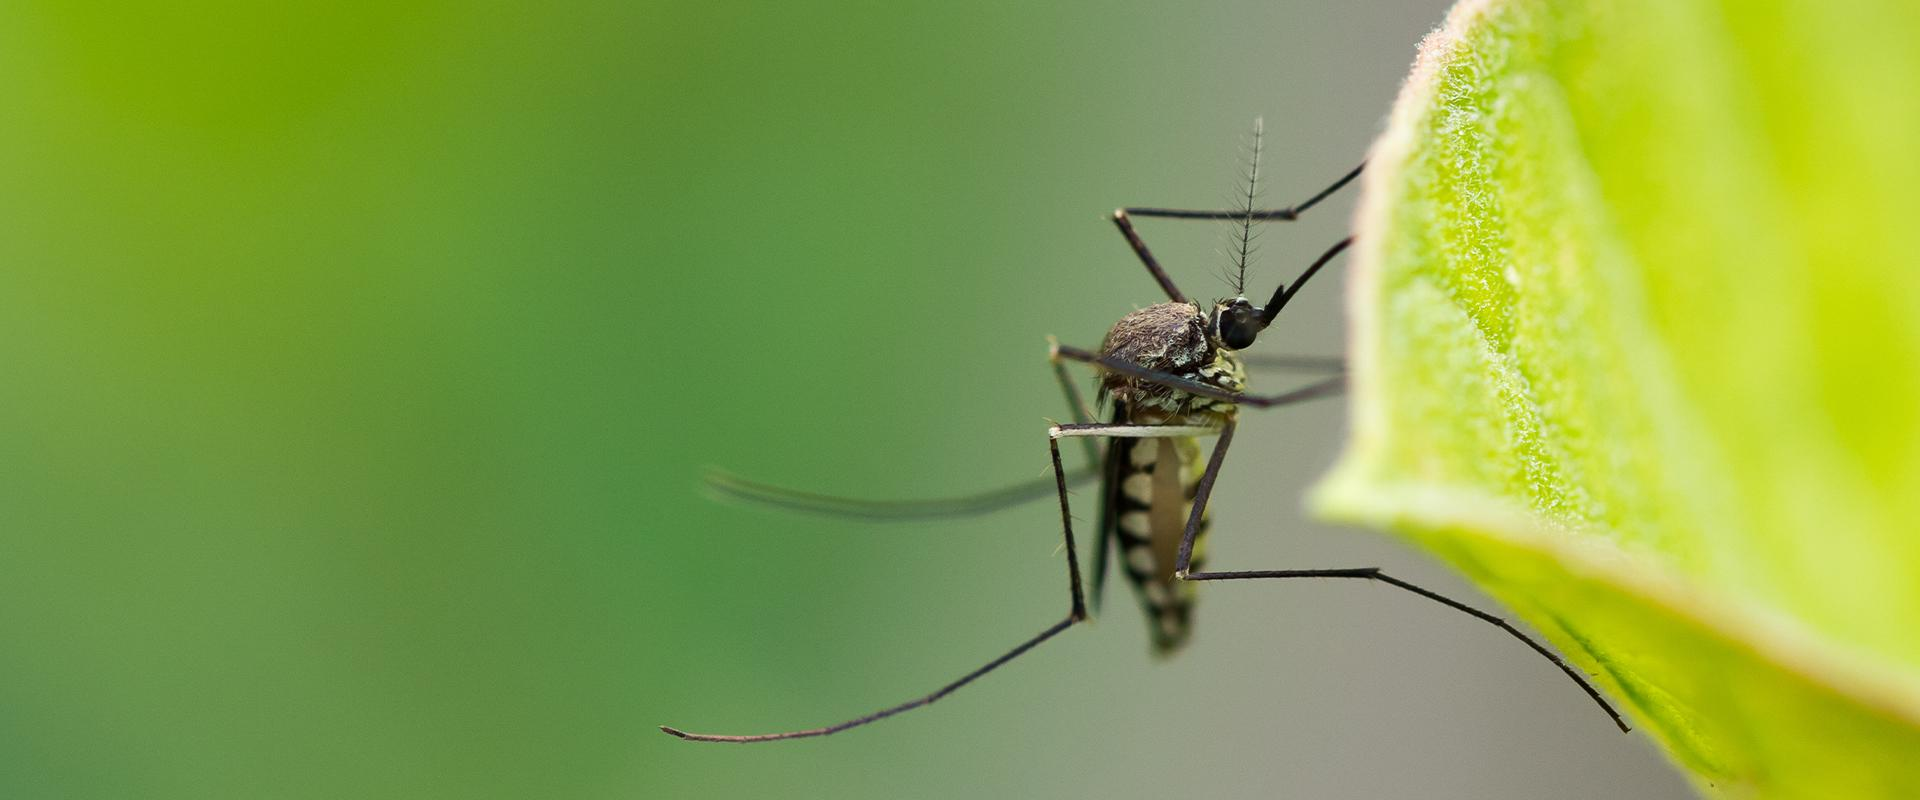 a mosquito on a green leaf